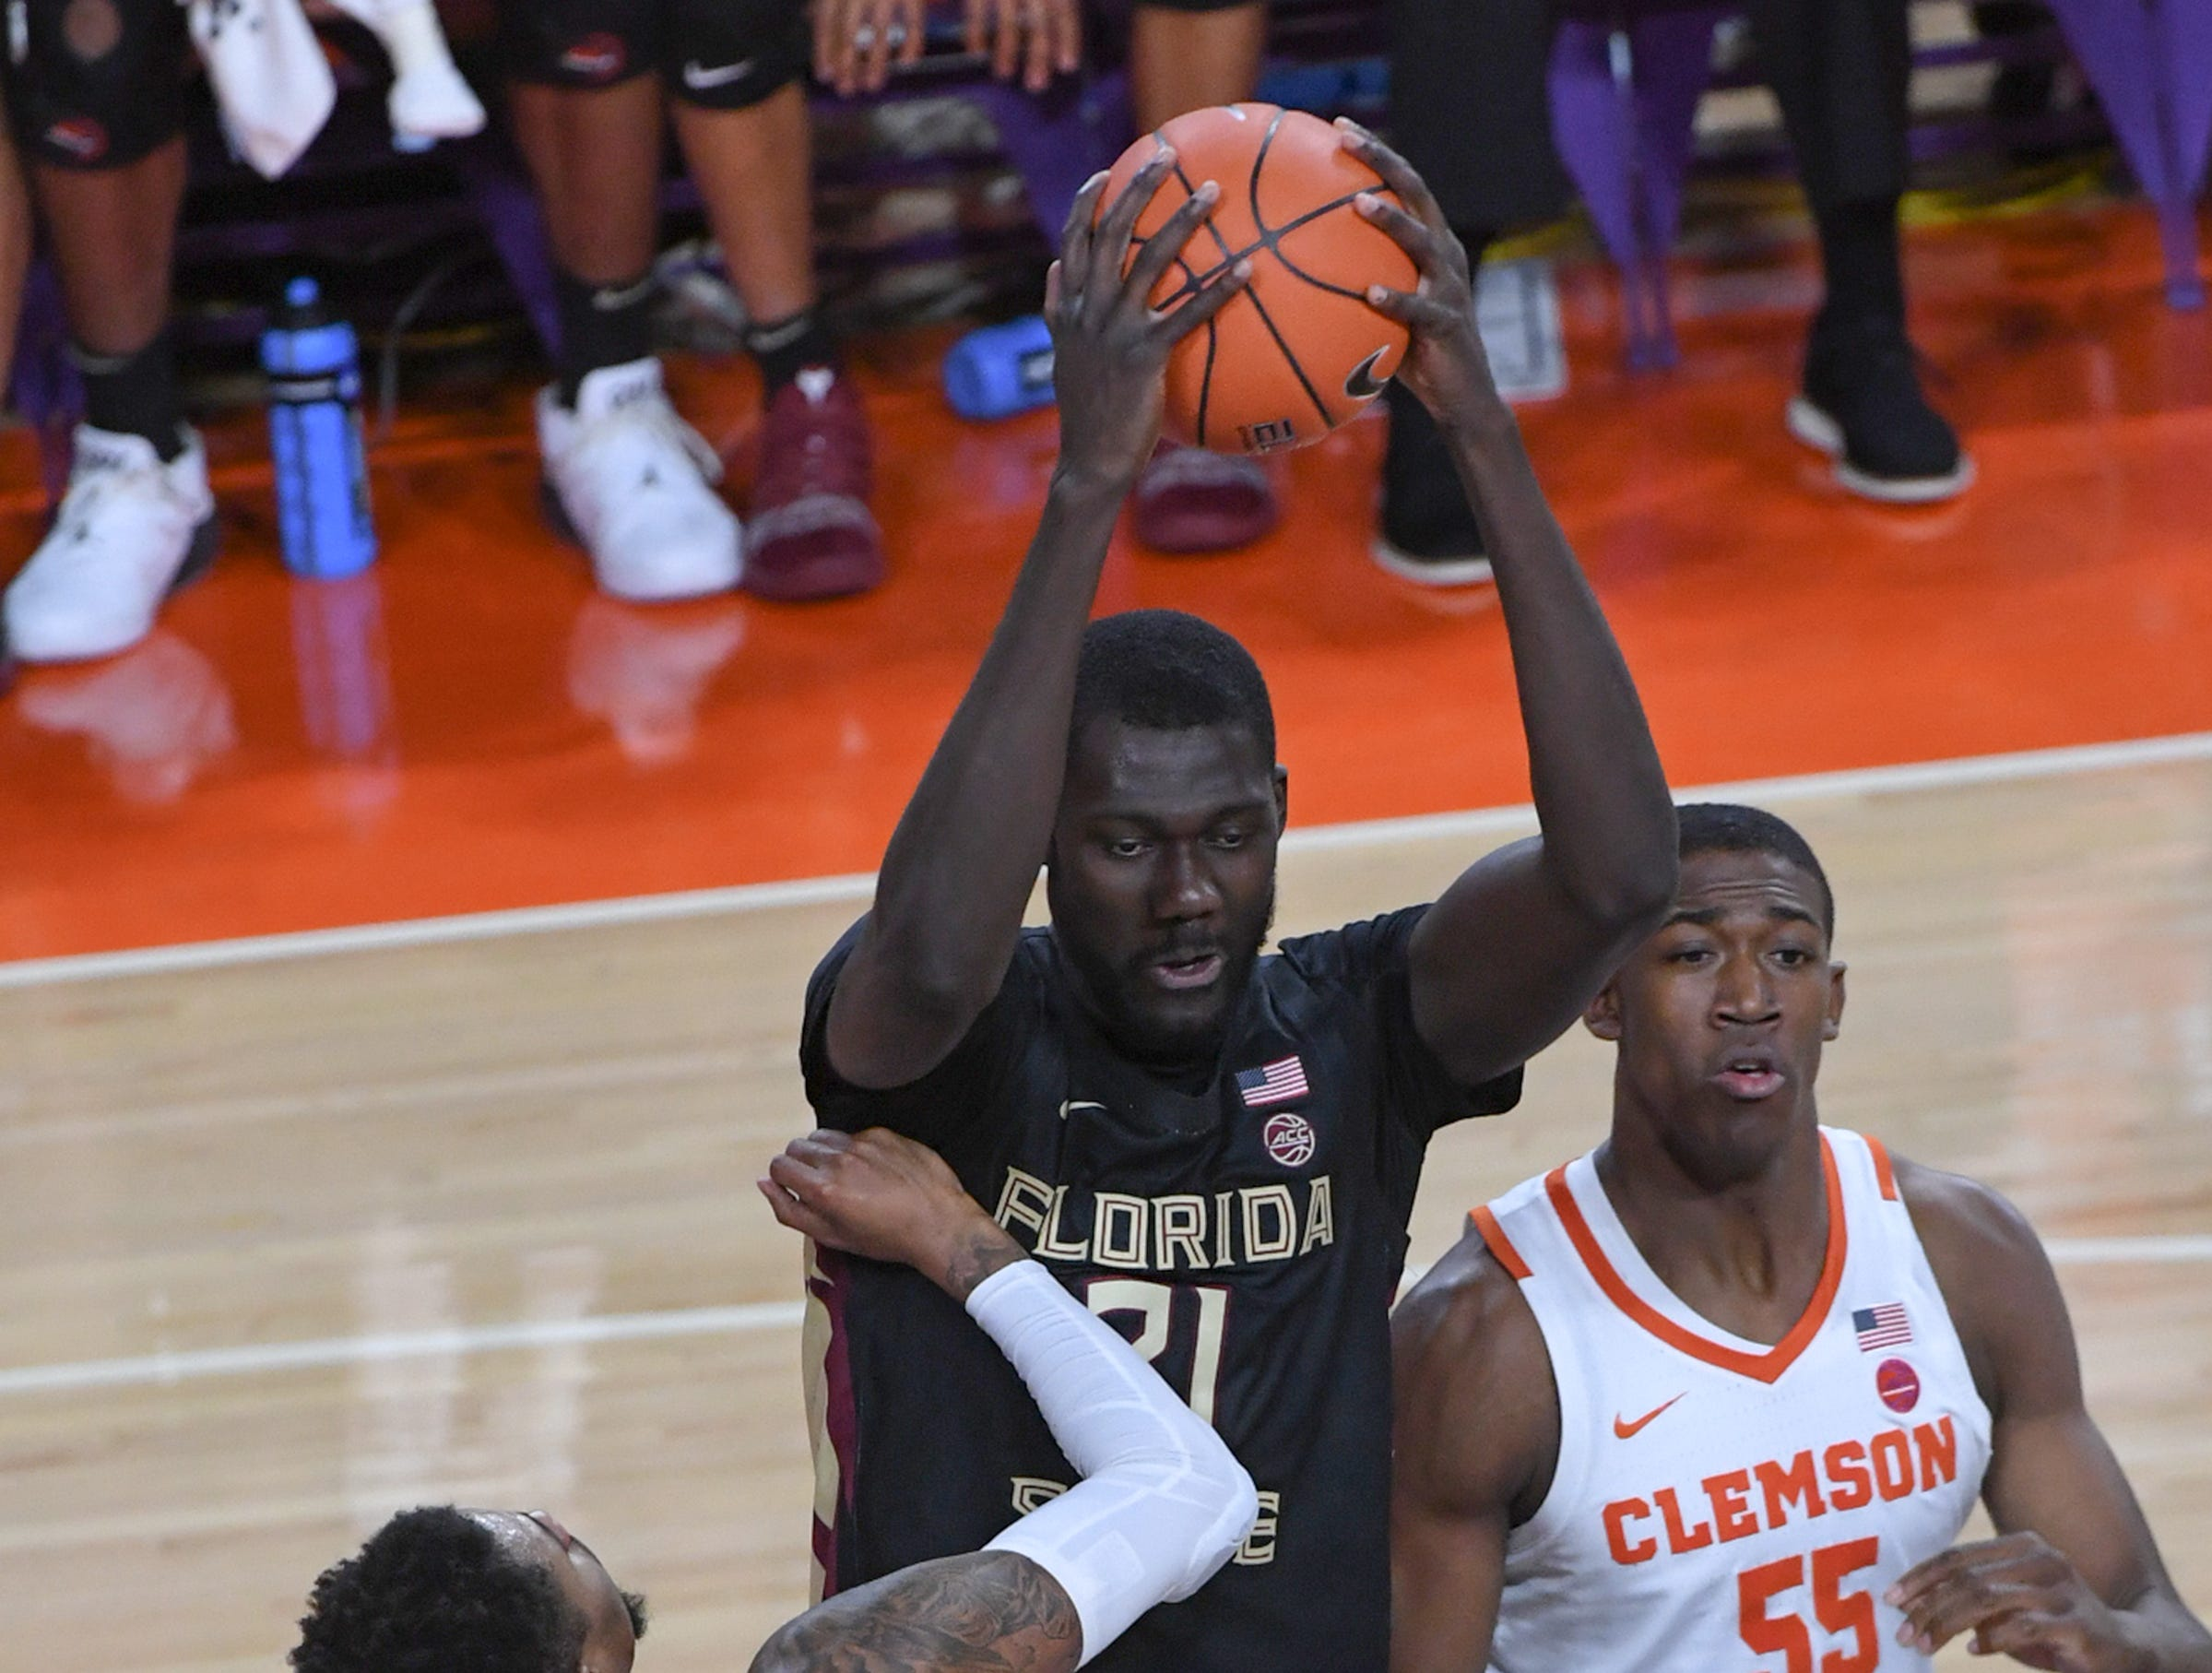 Clemson guard Shelton Mitchell (4) watches Florida State center Christ Koumadje(21) rebound during the first half at Littlejohn Coliseum in Clemson Tuesday, February 19, 2019.